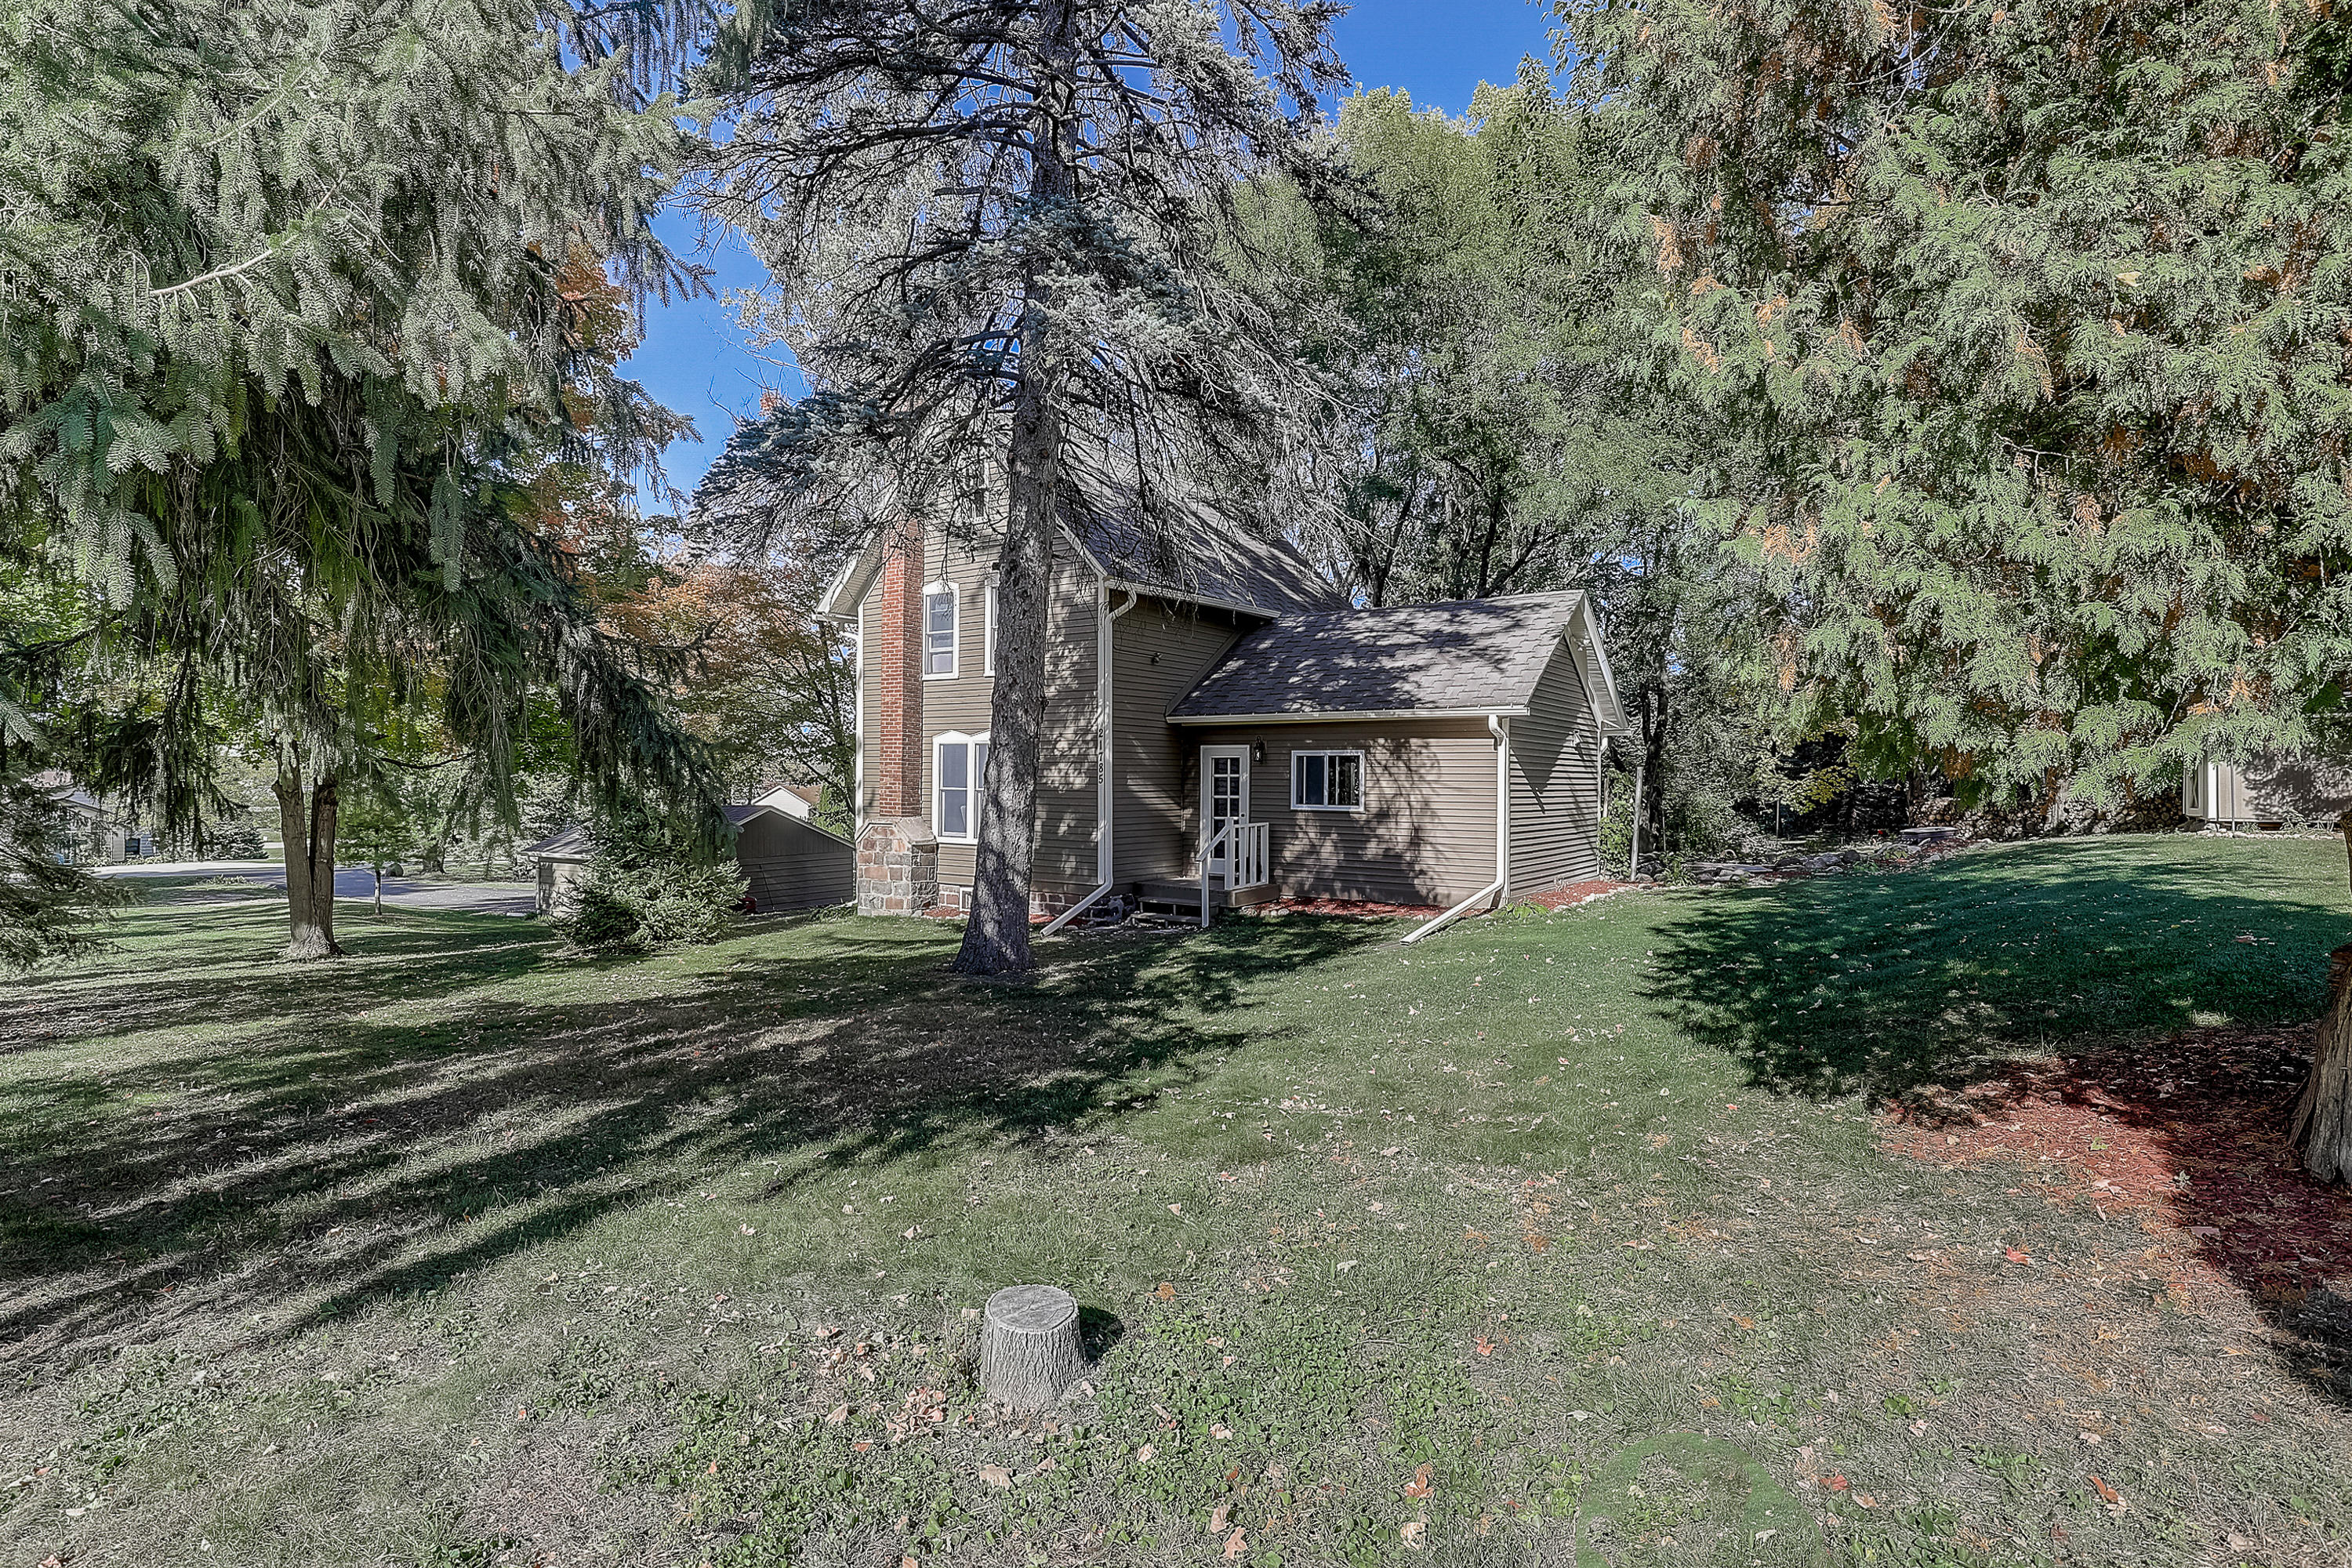 21785 Mary Lynn Dr, Brookfield, Wisconsin 53045, 3 Bedrooms Bedrooms, 5 Rooms Rooms,2 BathroomsBathrooms,Single-Family,For Sale,Mary Lynn Dr,1714140